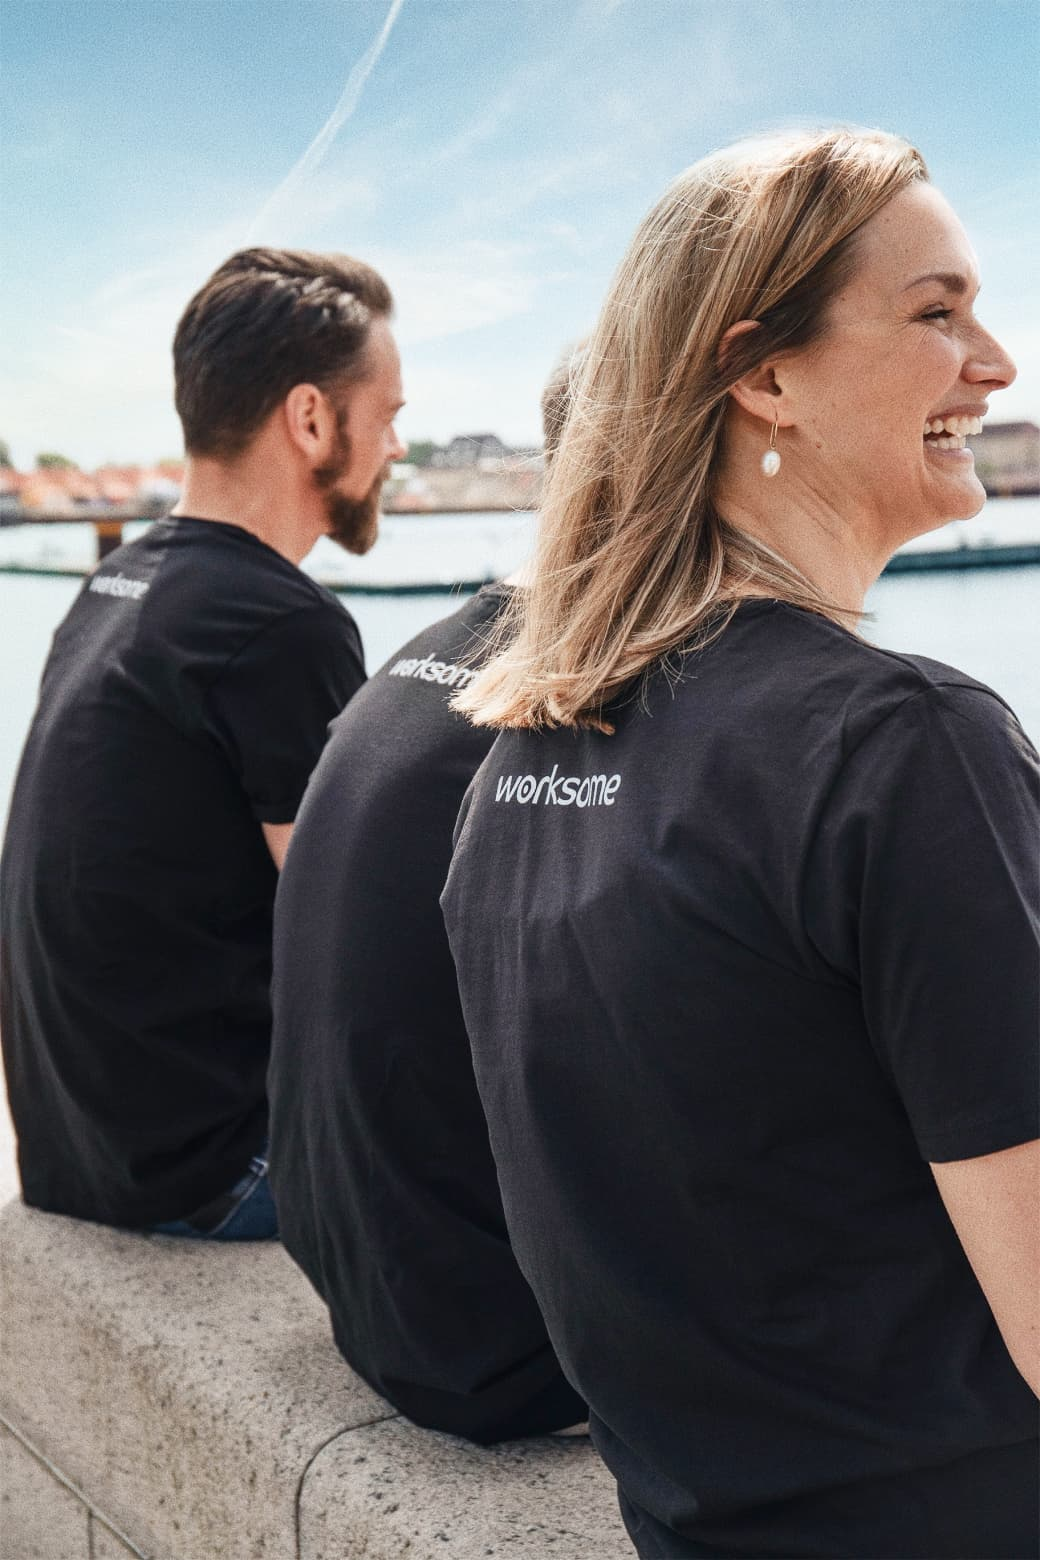 The C.E.O, C.C.O, C.P.O sitting in front of the sea with a worksome tee-shirt